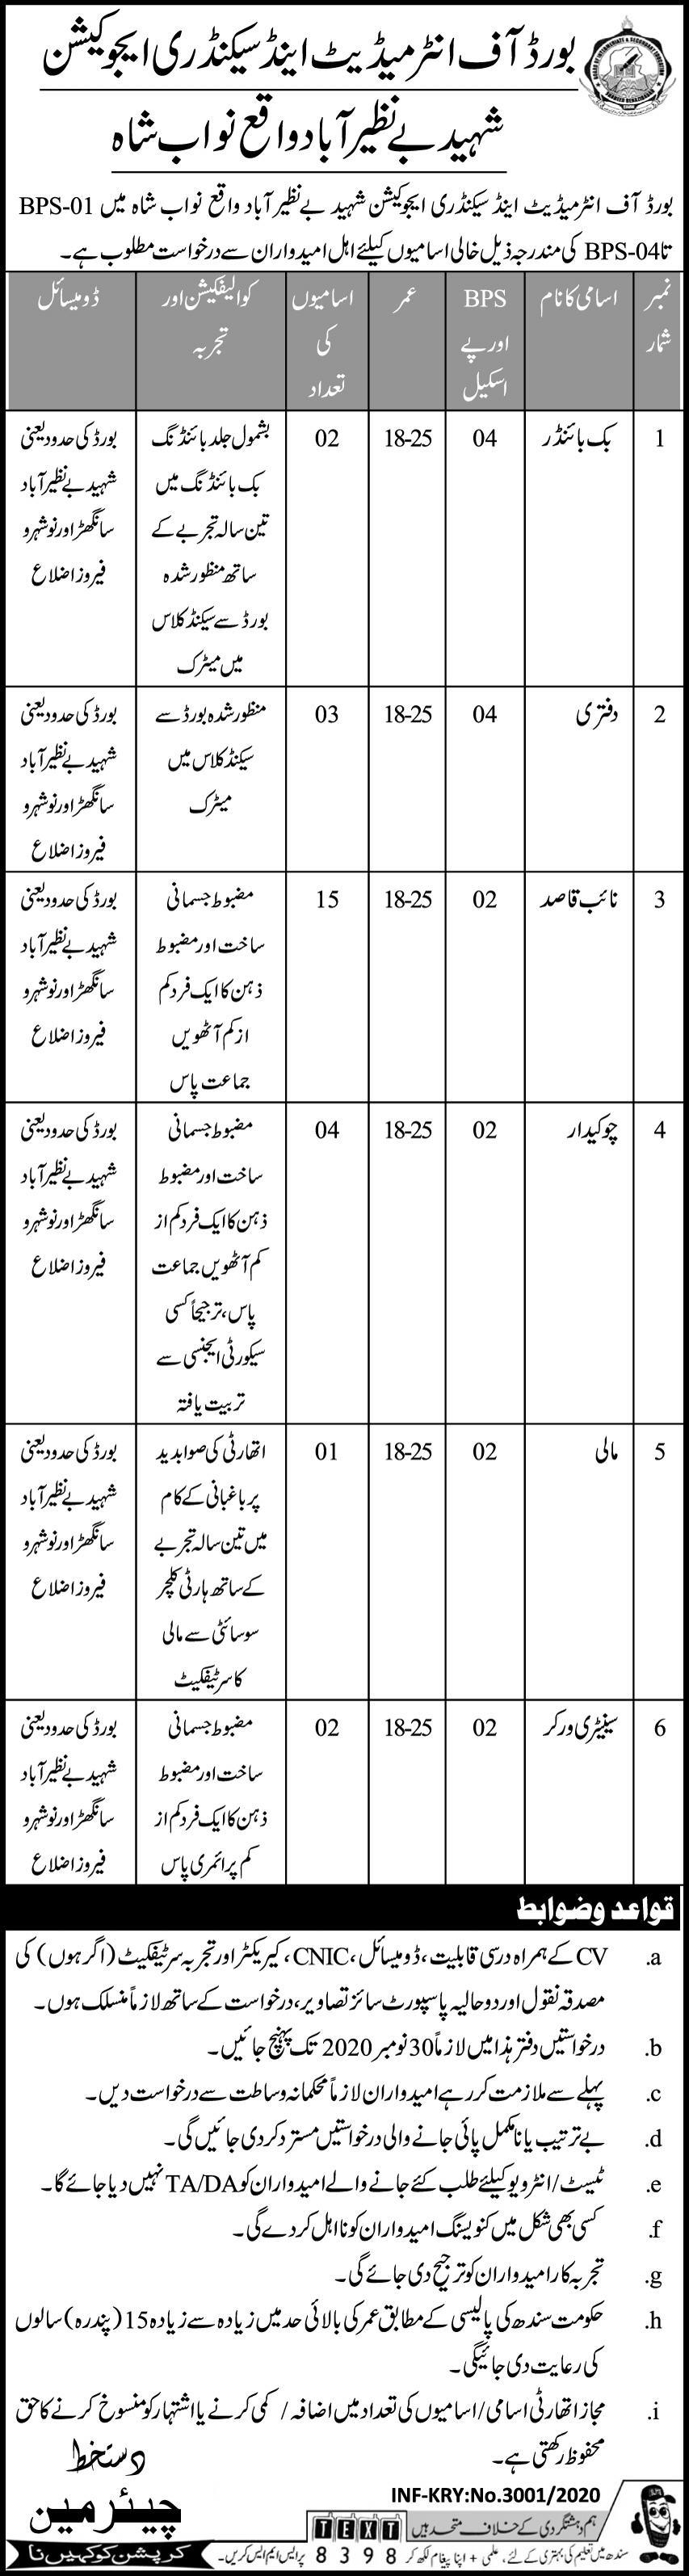 Board of Intermediate and Secondary Education BISE Jobs in Pakistan For Primary, Middle, Matric Base Candidates